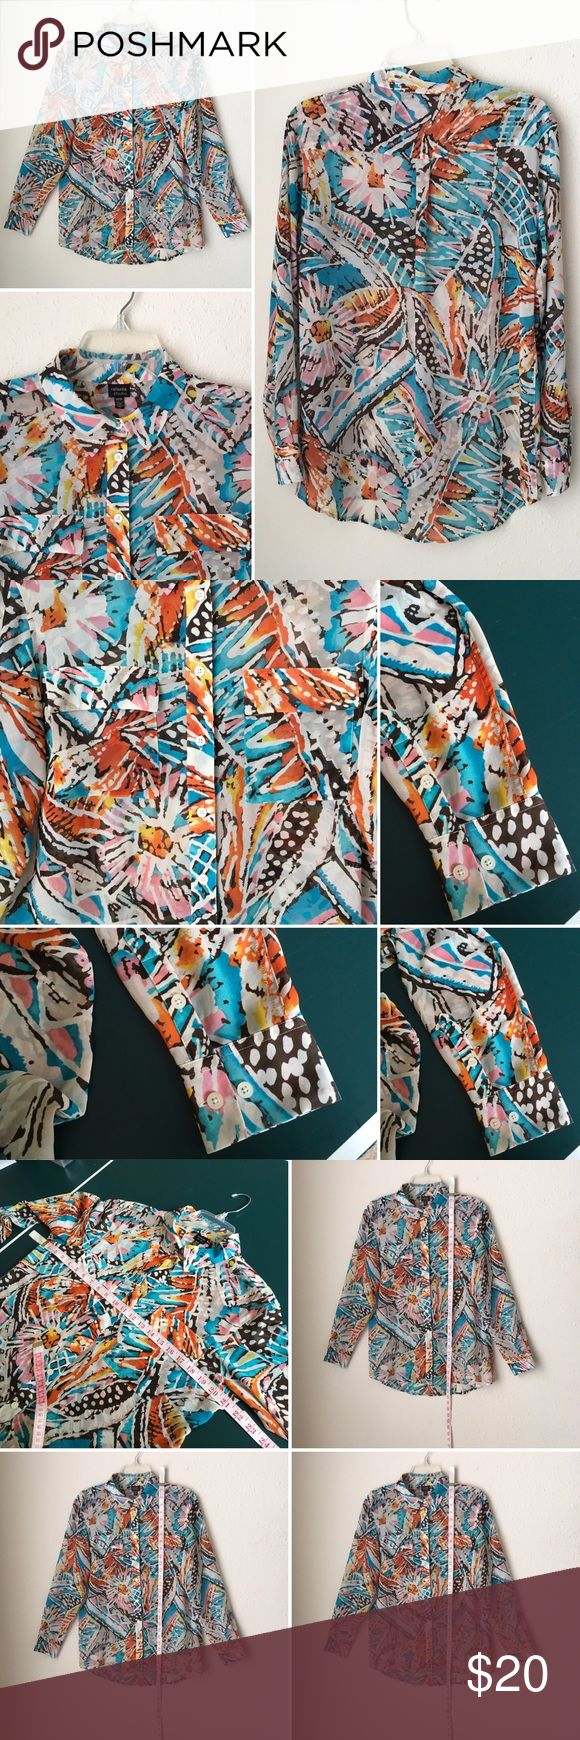 Flowy Abstract Print buttons shirt top L/Sleeve RAFAELLA STUDIO Flowy Abstract Print women sz M button down shirt top L/Sleeve.Very good used condition. Like artists canvas. Gorgeous print and colors. Buttons down collar shirt, two chest flap pockets, very light n airy,rounded hem, long buttons cuffed sleeves. Smoke pet free. Measurements included. No tear rip holes stains. Rafaella Tops Button Down Shirts